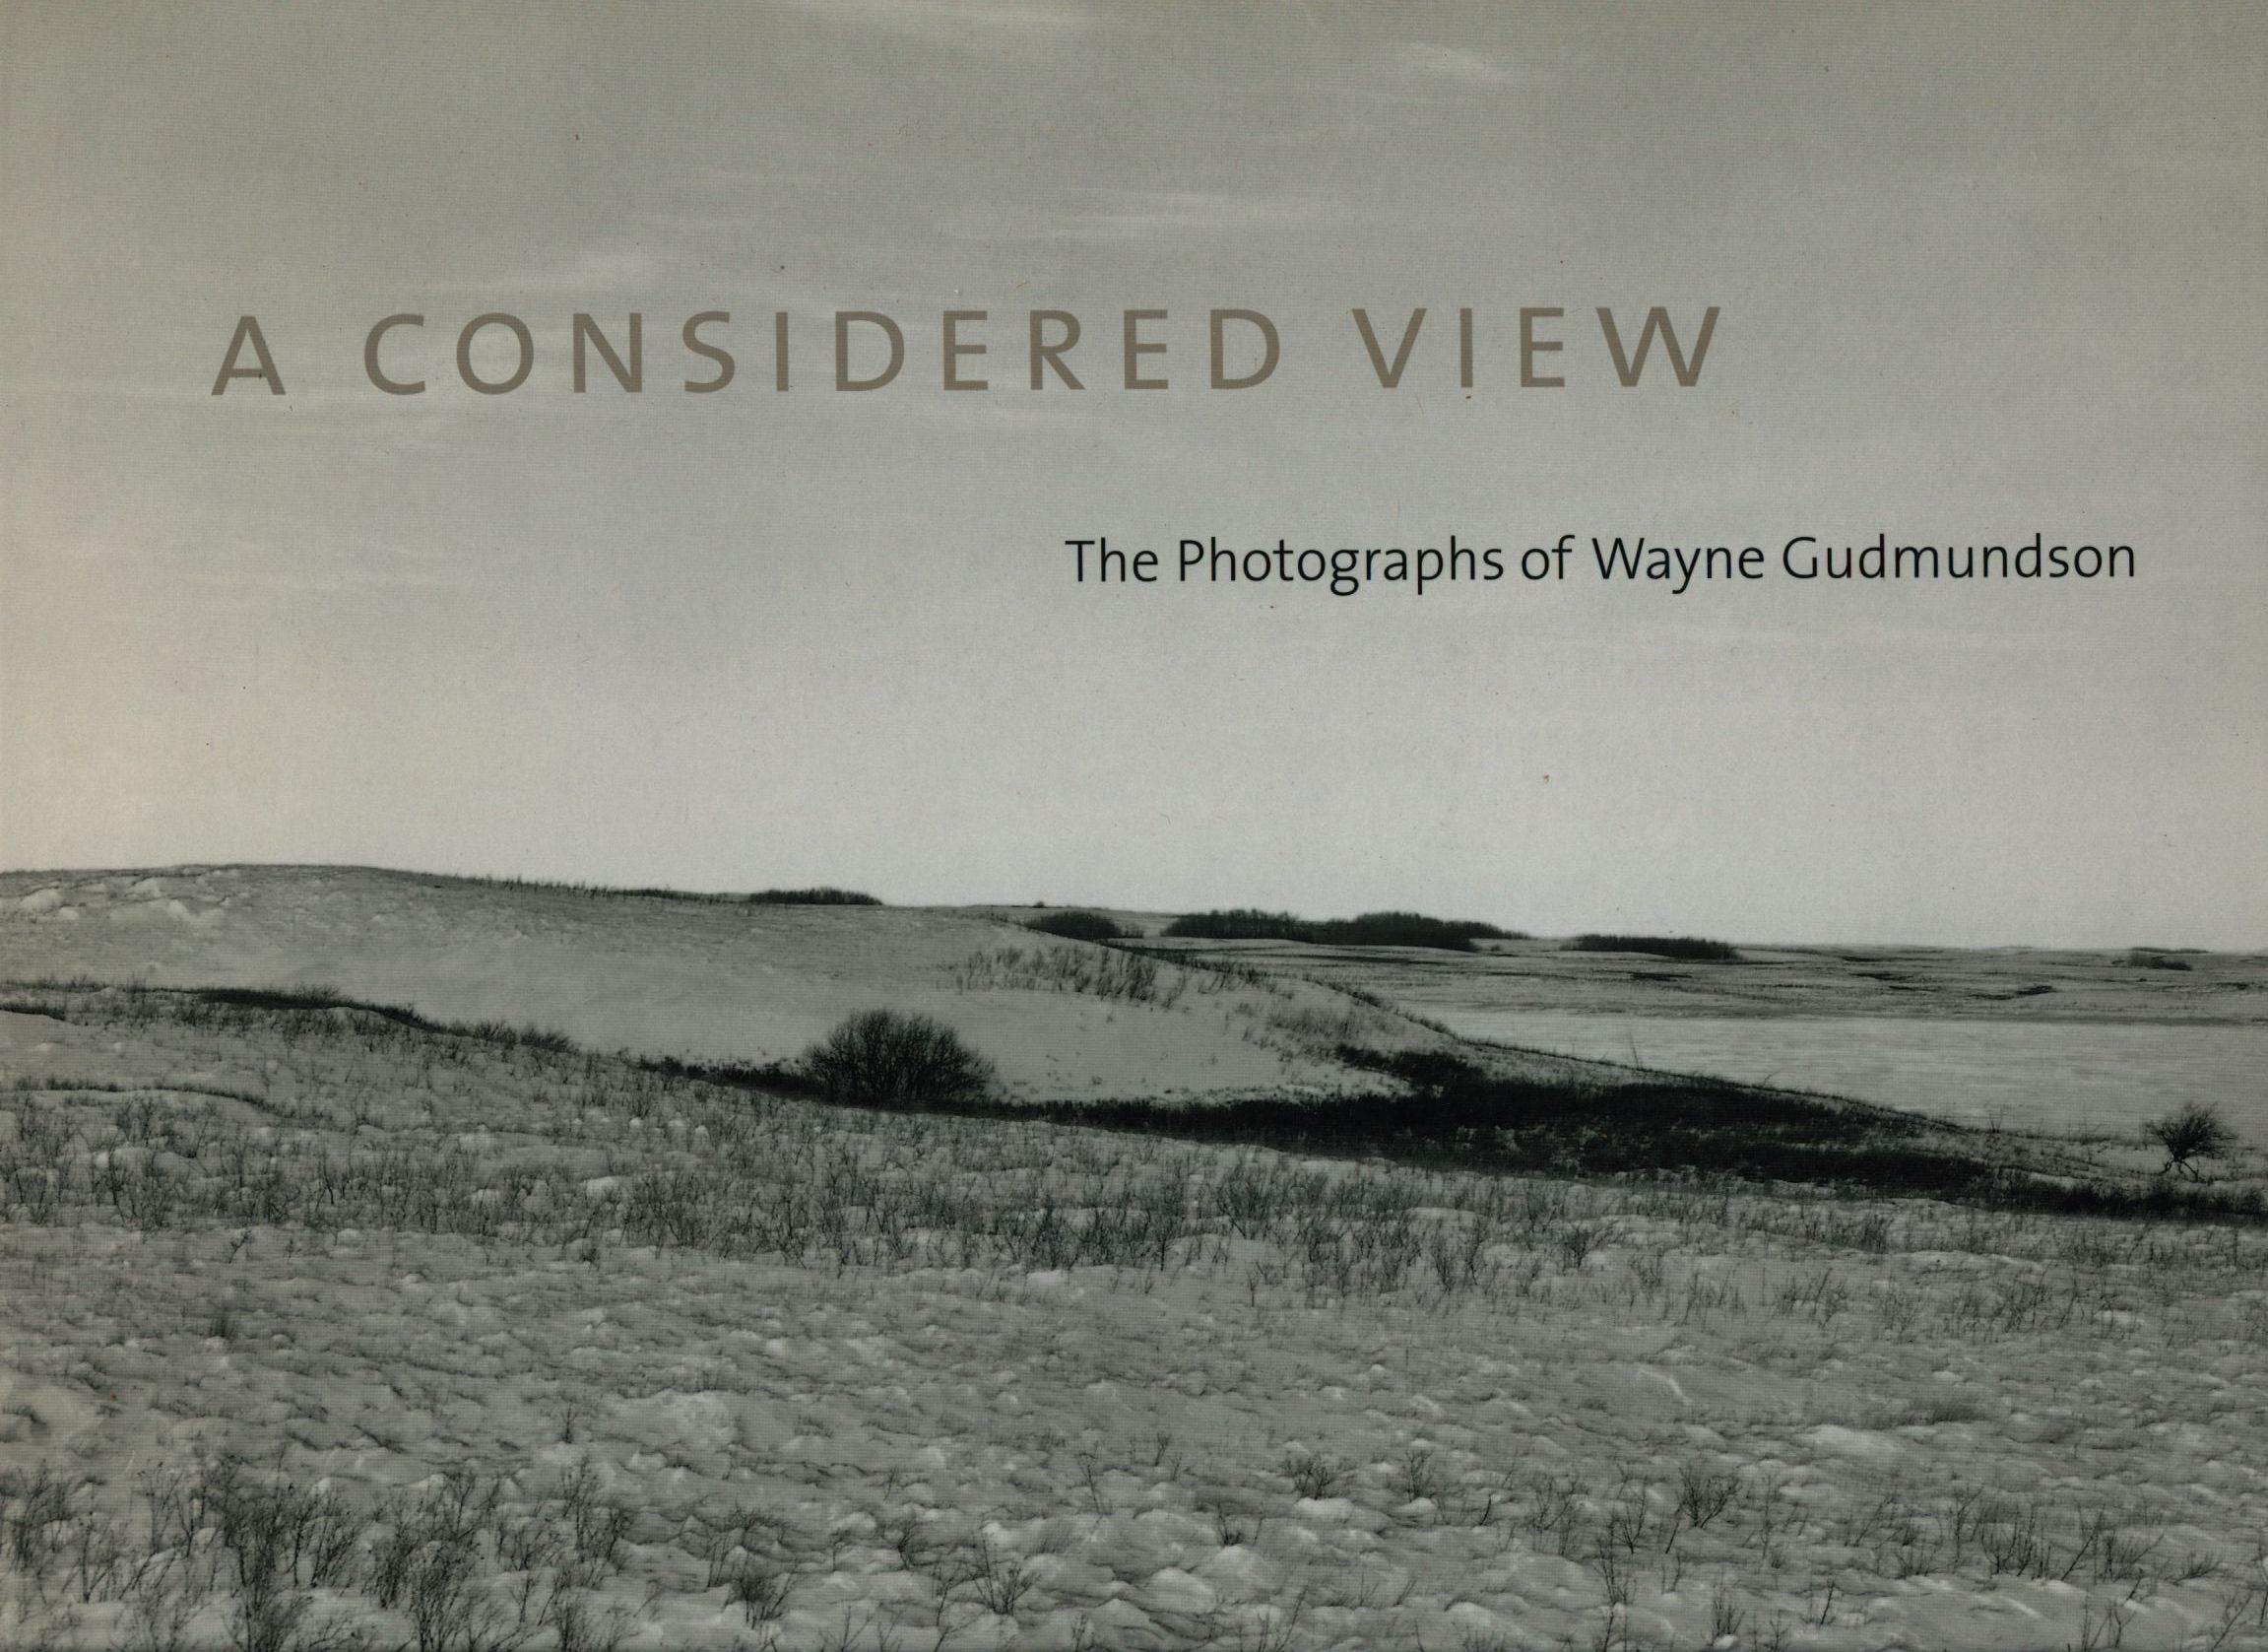 Considered View, A